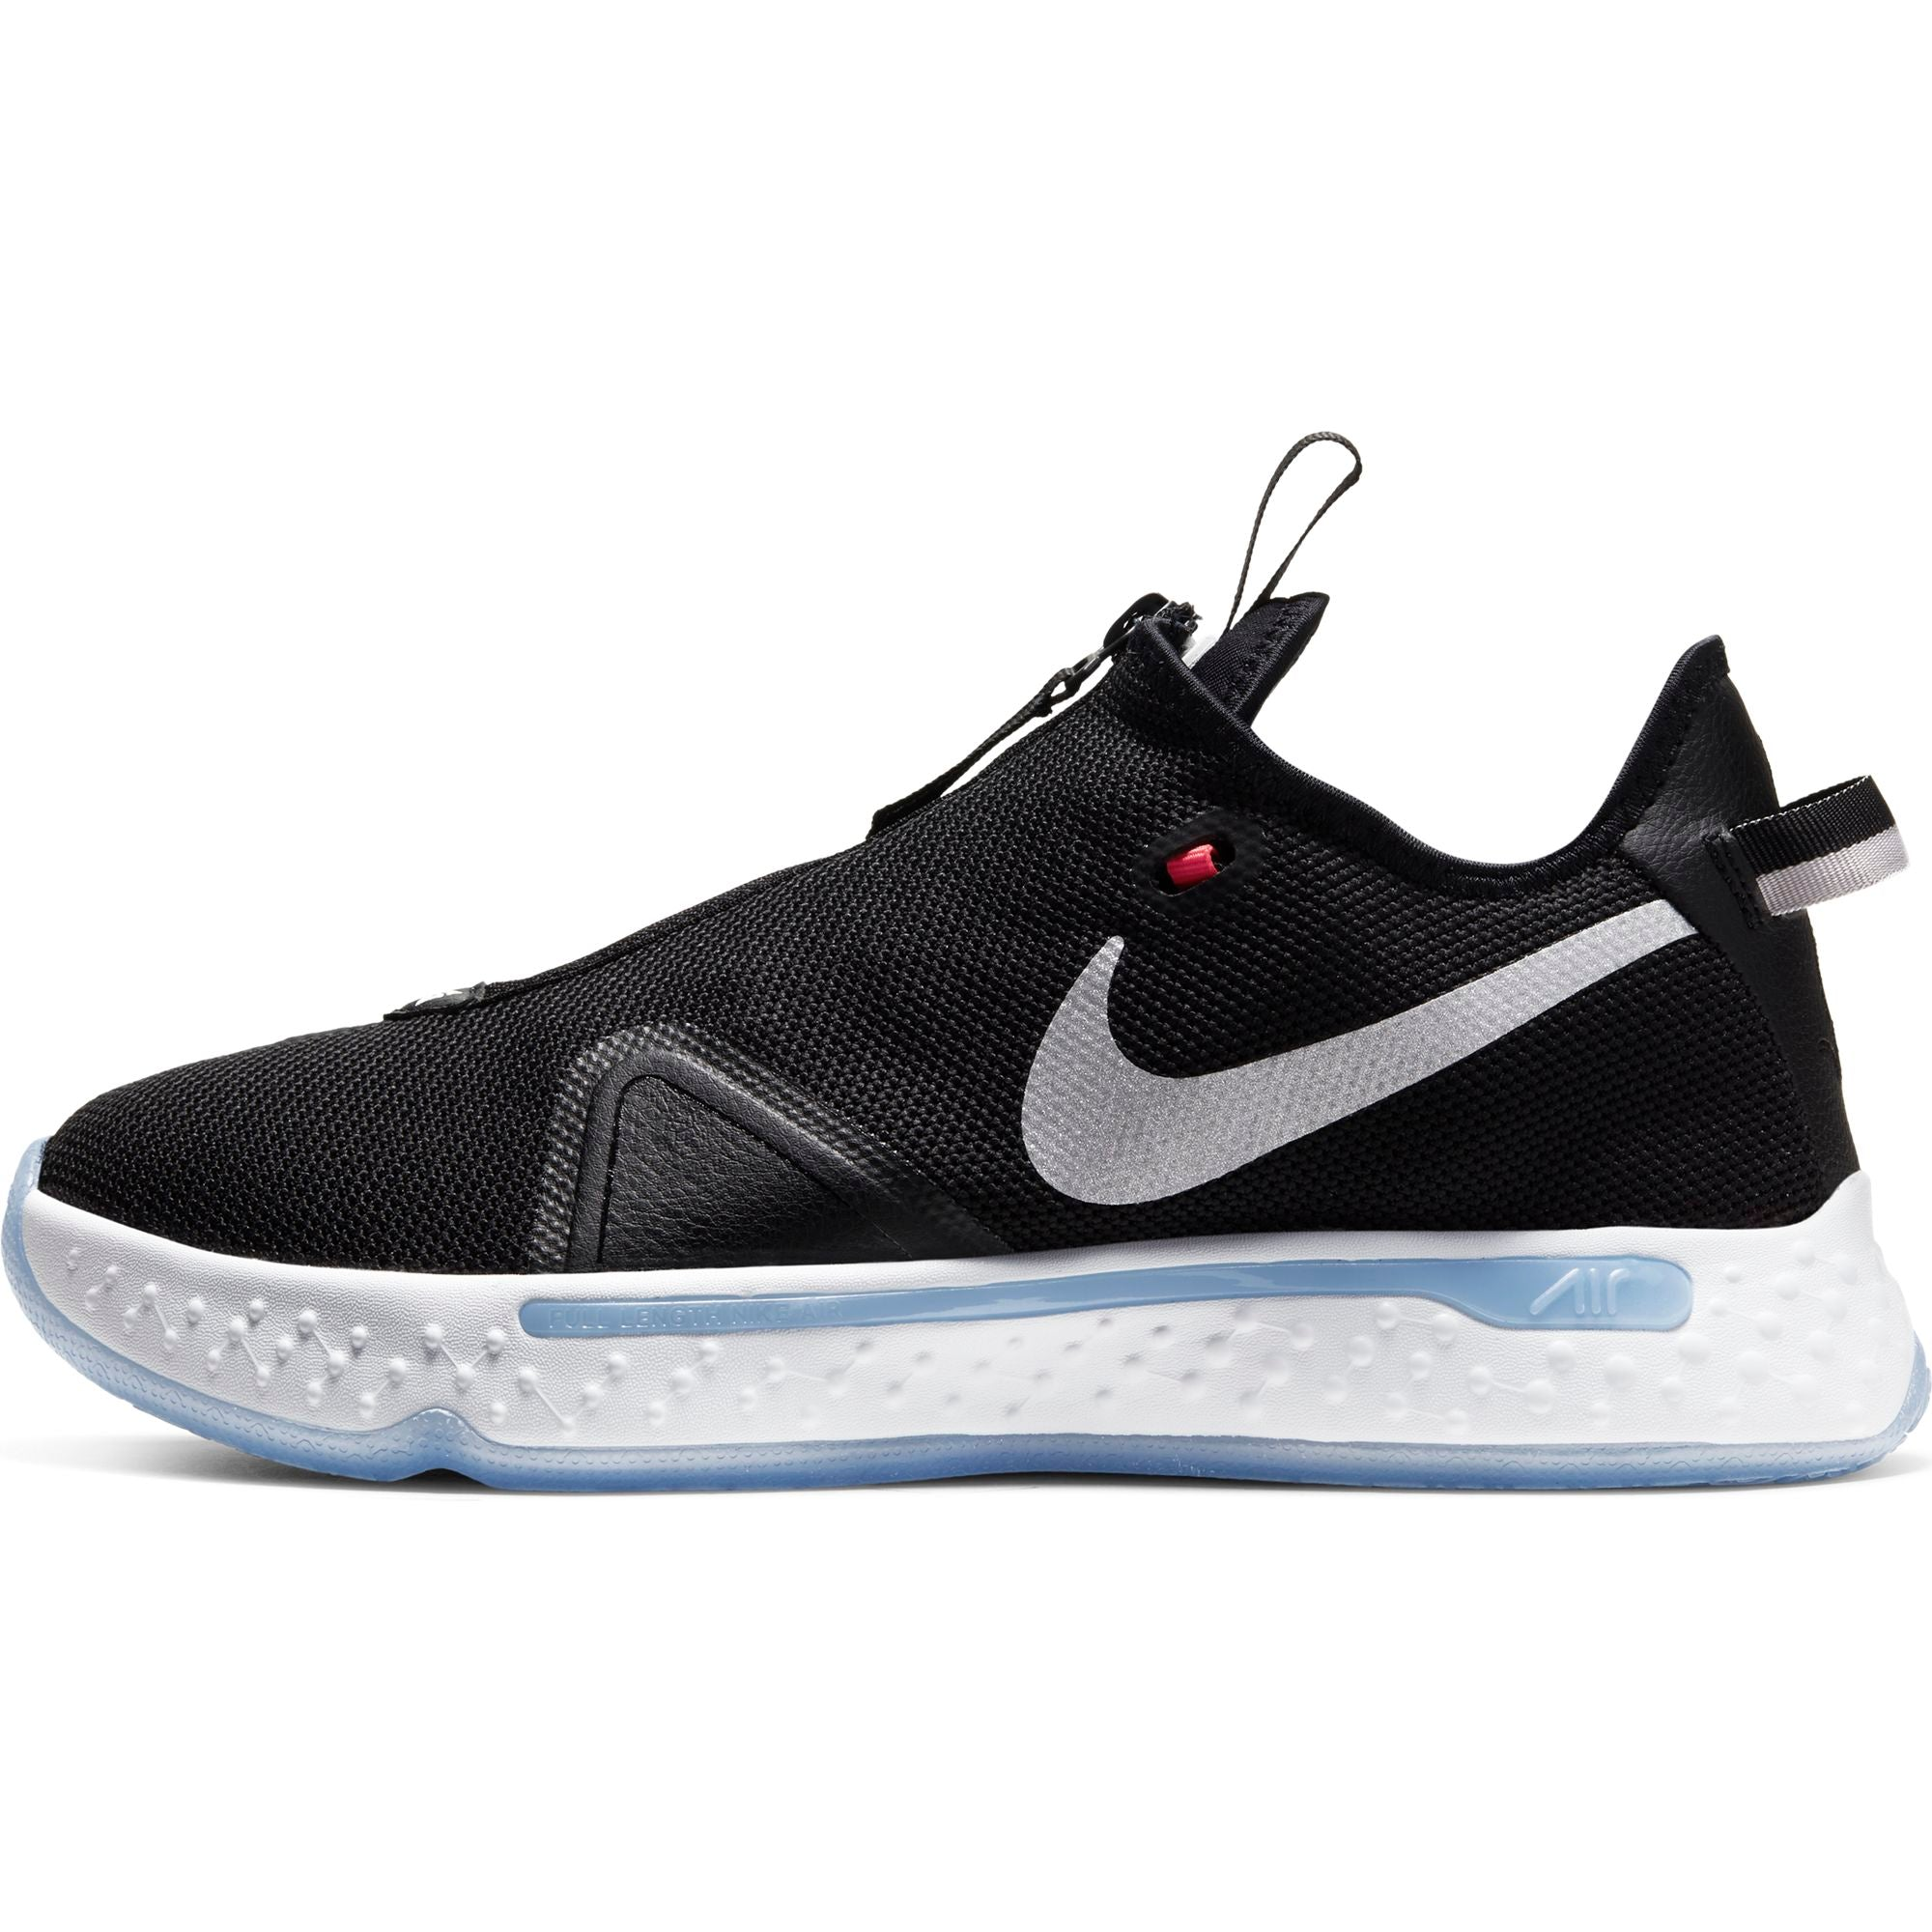 Nike PG 4 Basketball Shoe - NK-CD5079-001